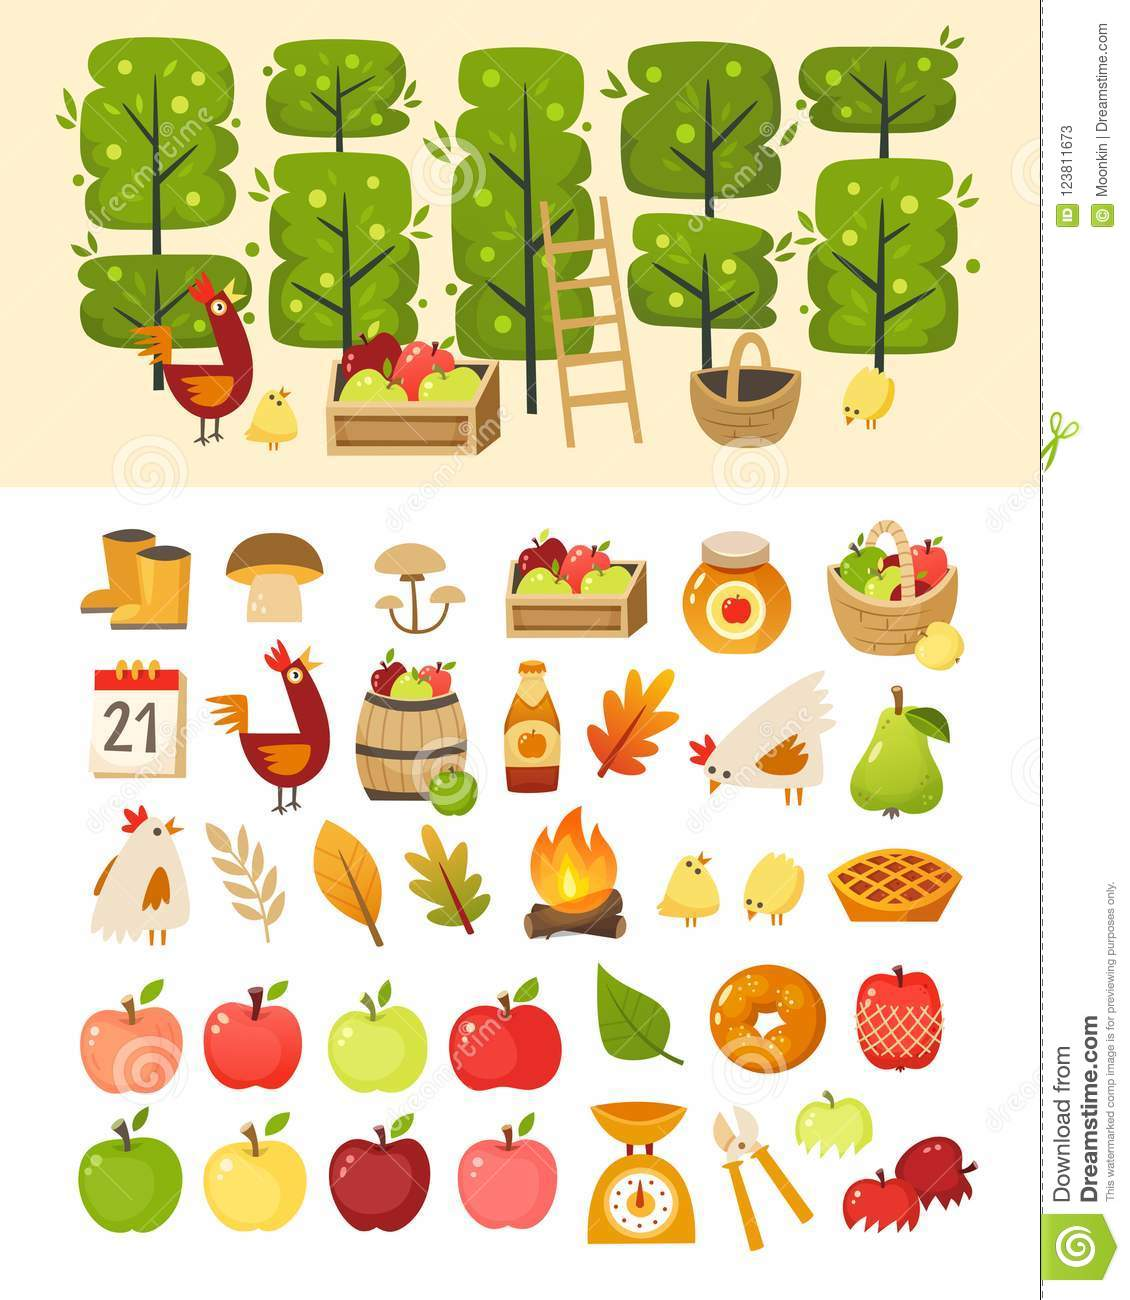 A scene with apple garden trees and elements in front of it. Plus icons of various apple theme items, foods and containers.